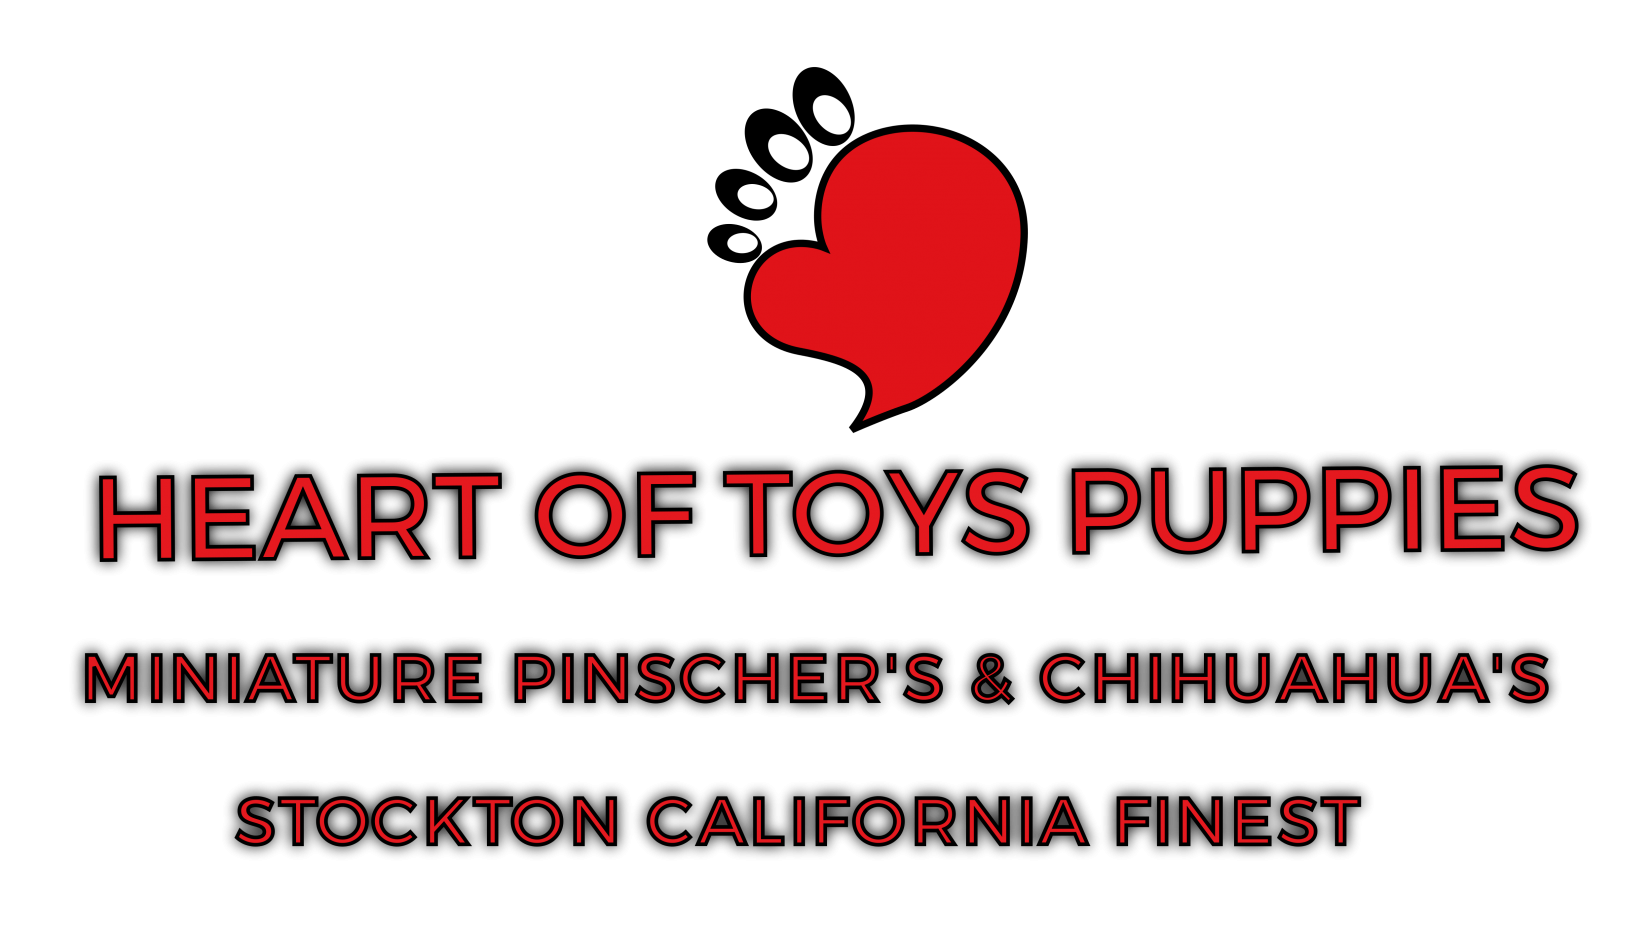 HEART OF TOYS MINIATURE PINSCHERS & CHIHUAHUAS